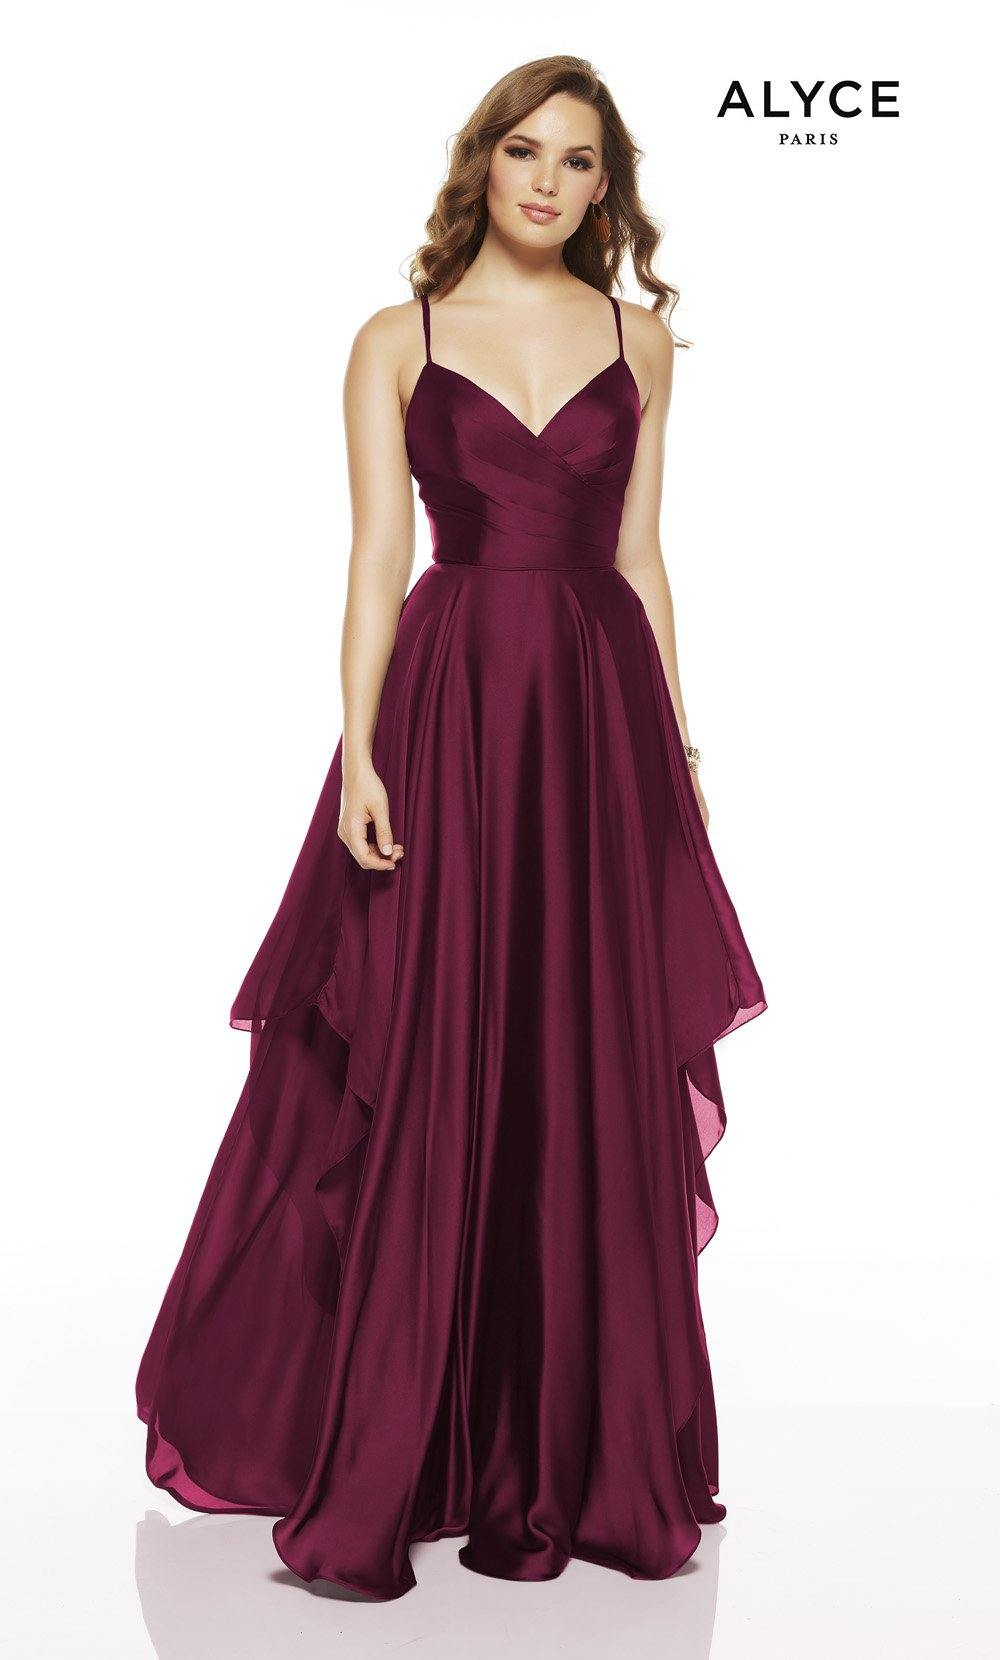 Wine flowy wedding guest dress with a V-neckline